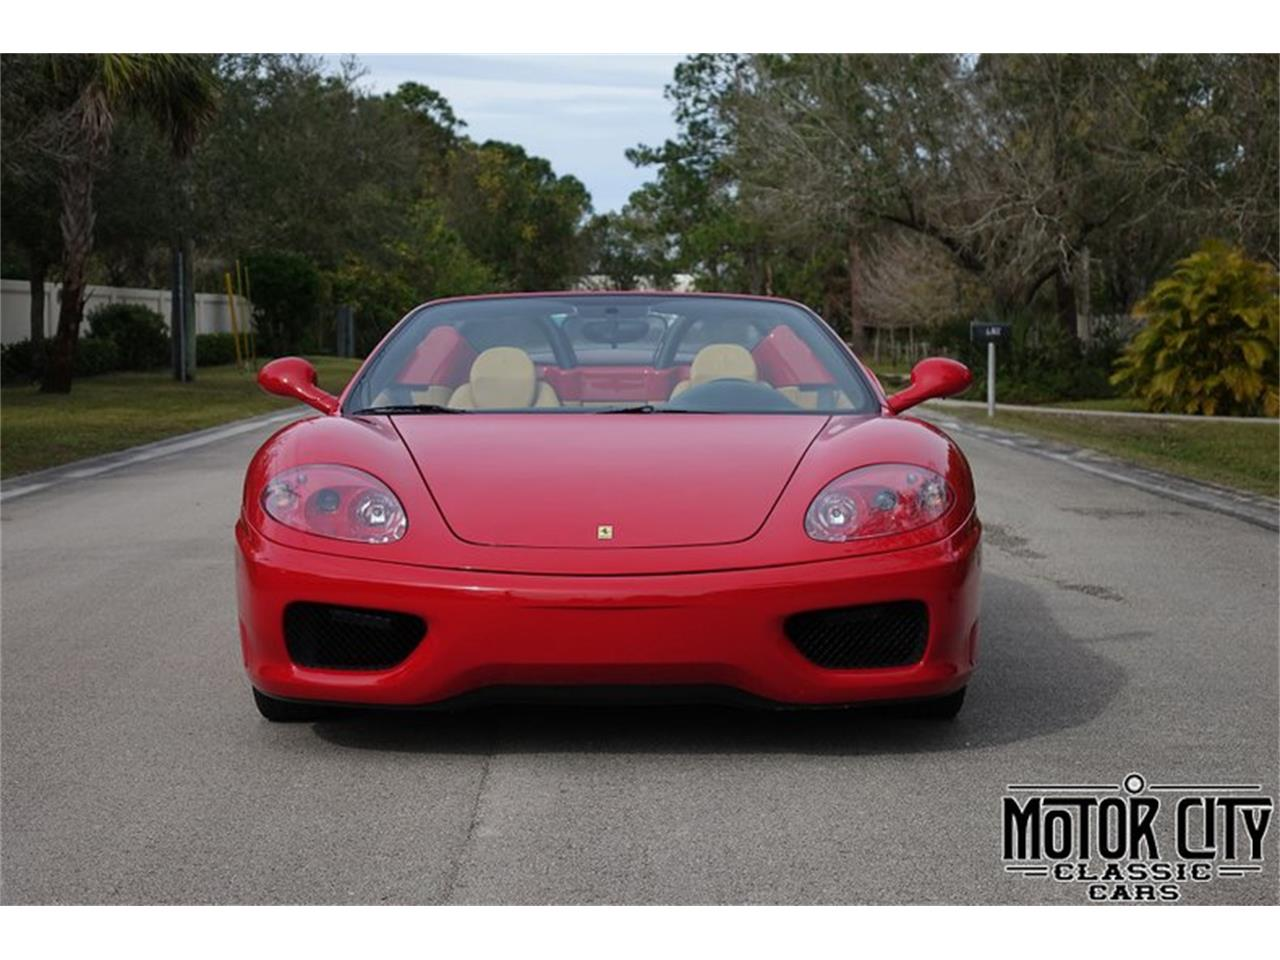 Large Picture of '03 360 - $103,000.00 Offered by Motor City Classic Cars - NBOQ